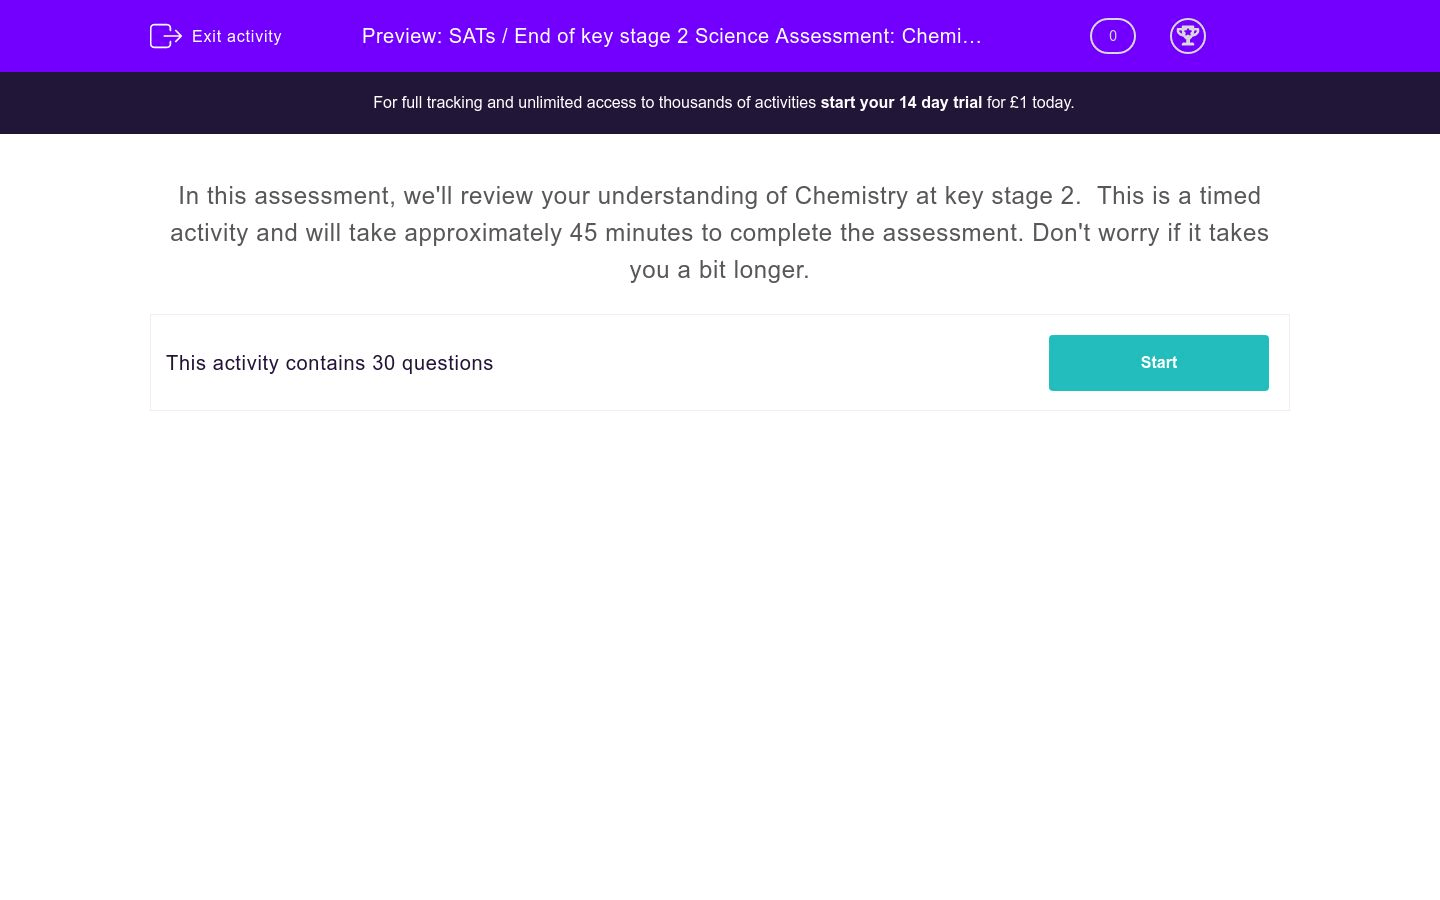 Sats End Of Key Stage 2 Science Assessment Chemistry